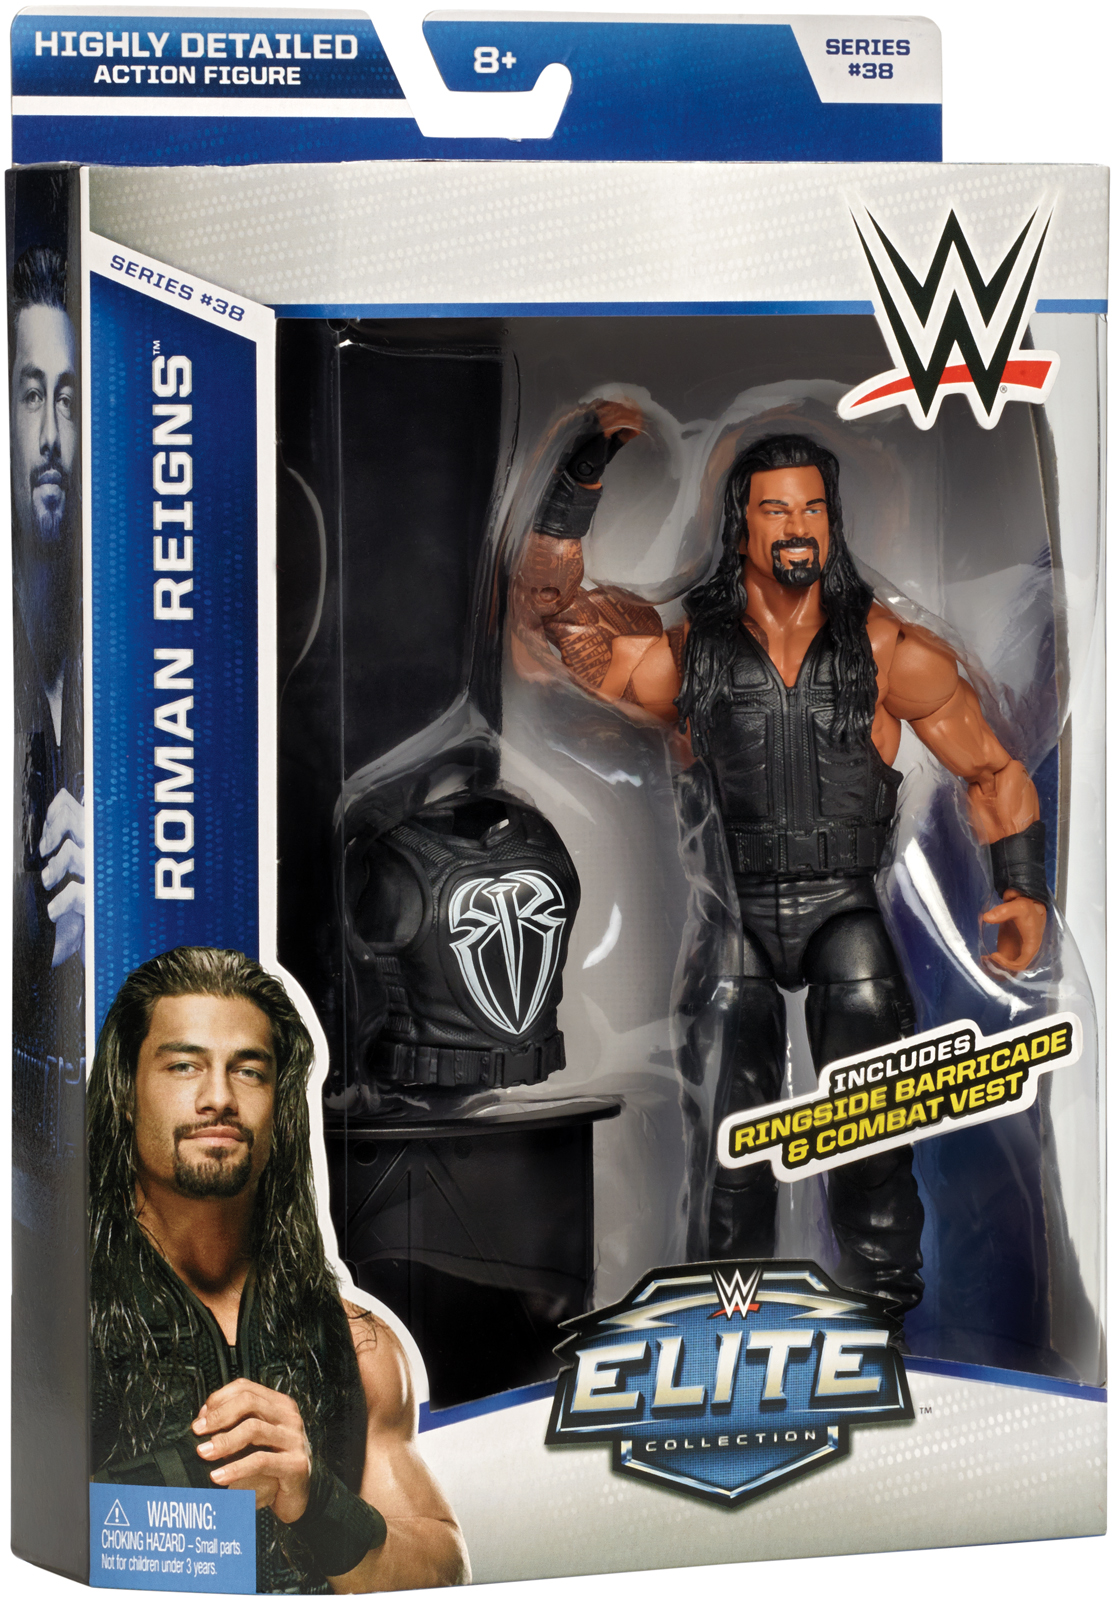 WWE Roman Reigns - WWE Elite 38 Toy Wrestling Action Figure